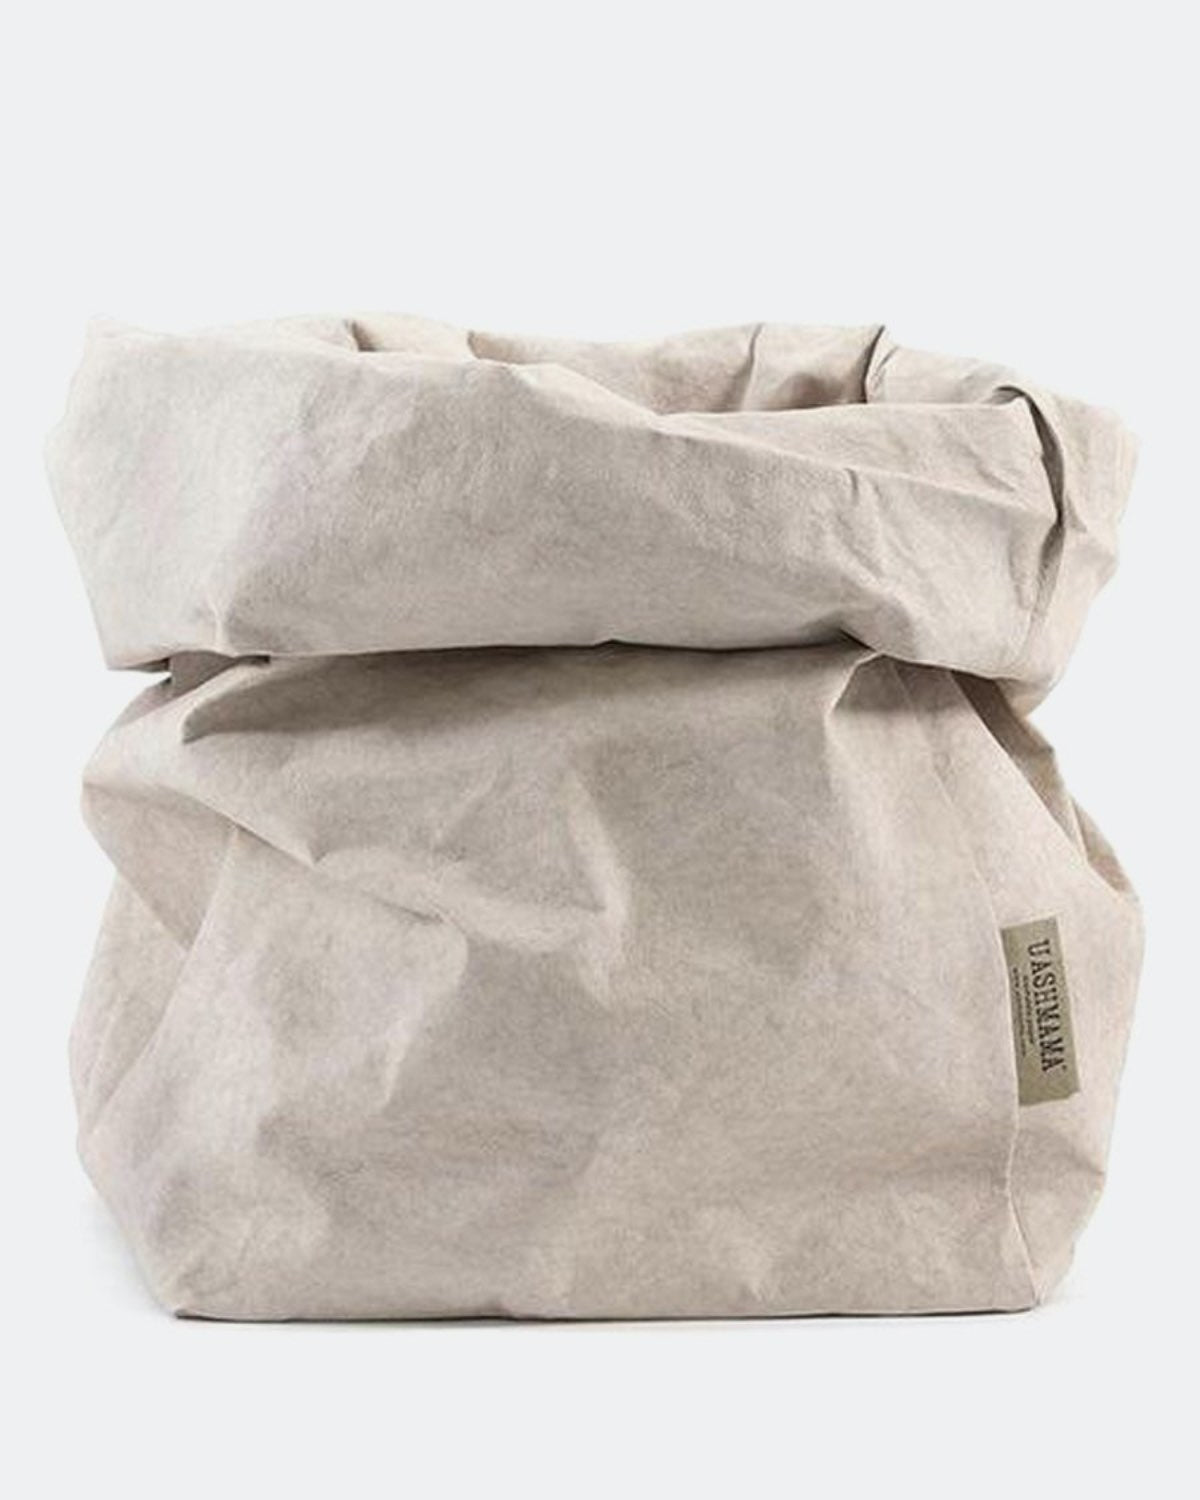 Uashmama Washable Paper Bag - Medium